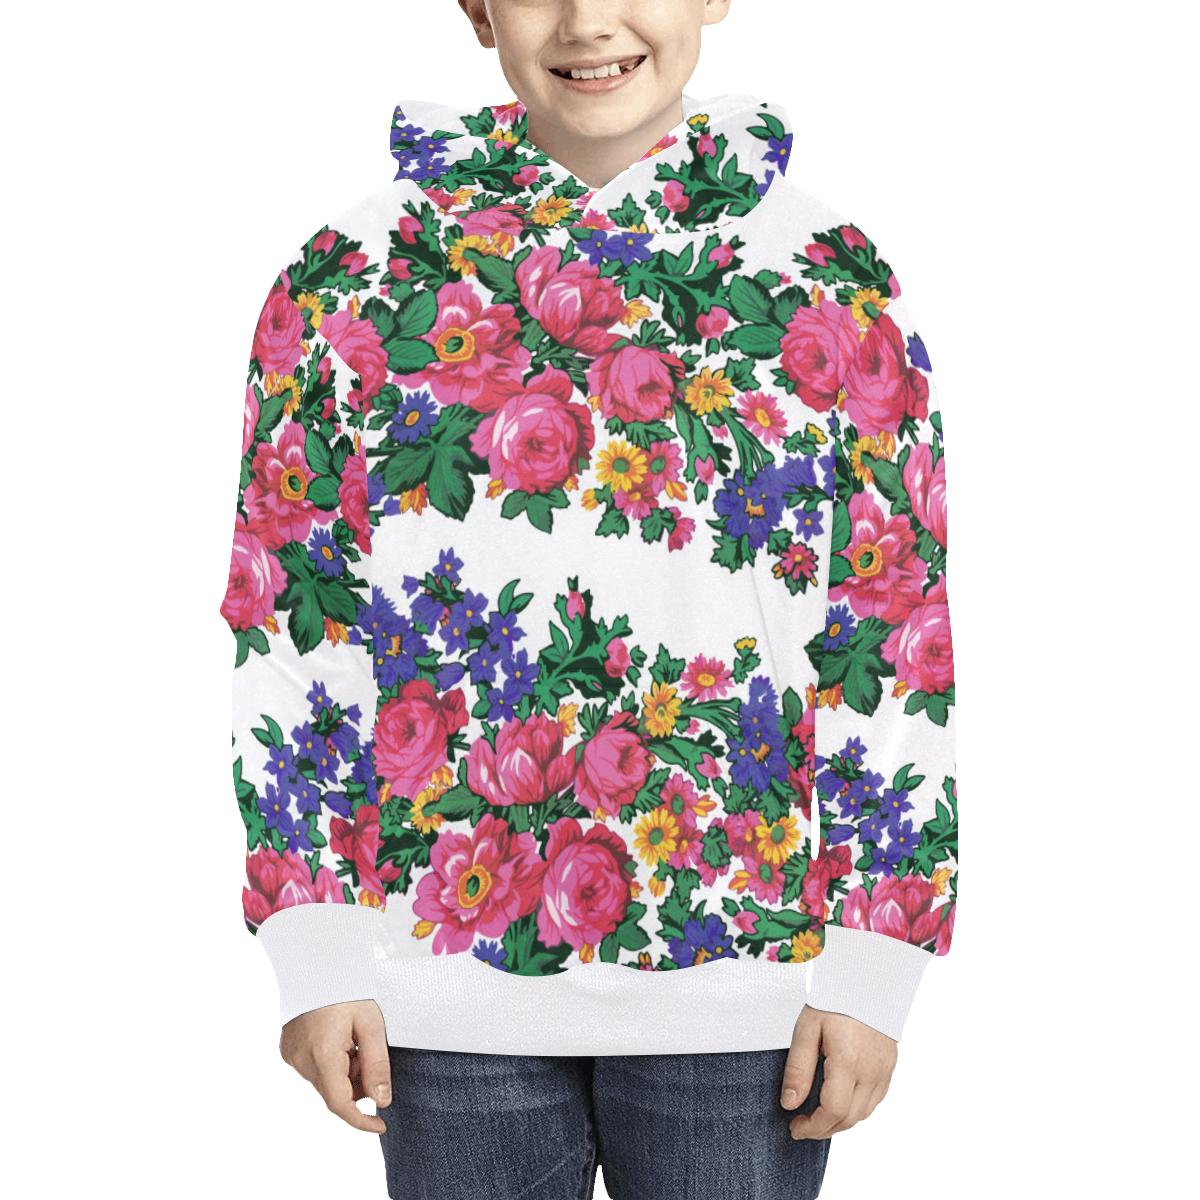 Kokum's Revenge White Kids' All Over Print Hoodie (Model H38) Kids' AOP Hoodie (H38) e-joyer